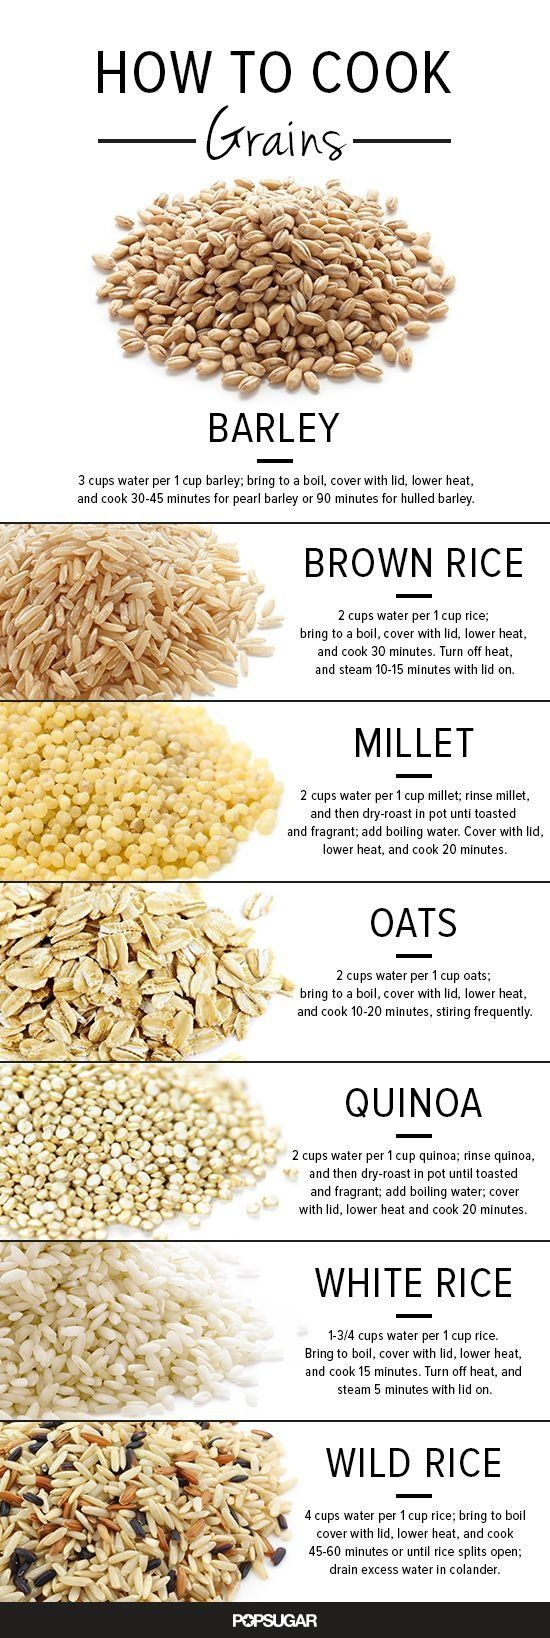 Brown rice provides superior nutrition value over white rice                                                                                                                                                      More